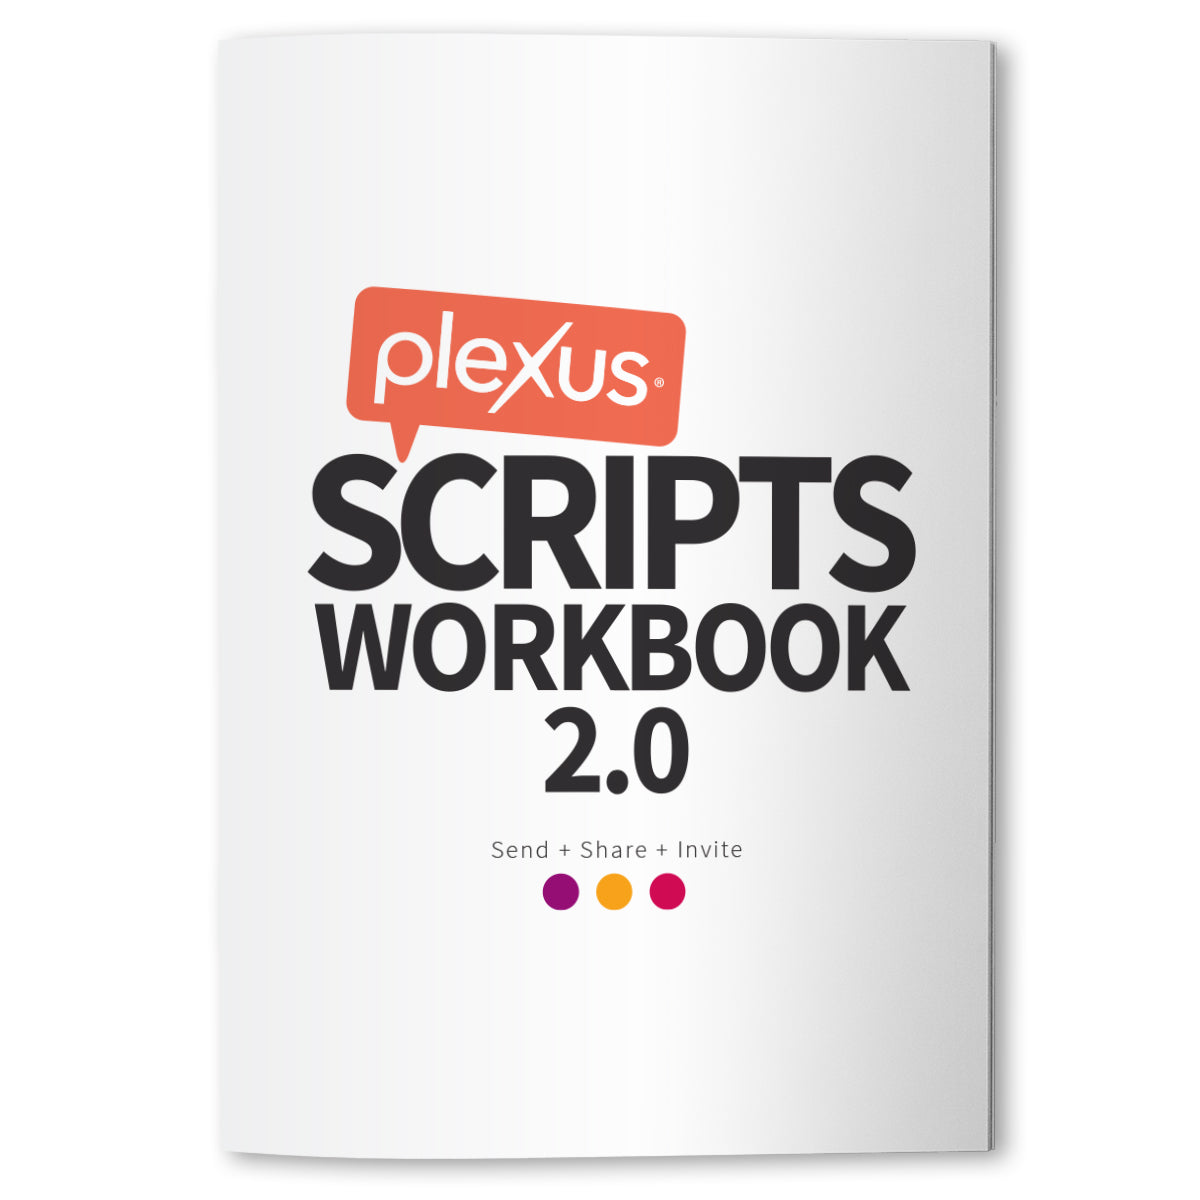 Plexus® Scripts Workbook 2.0